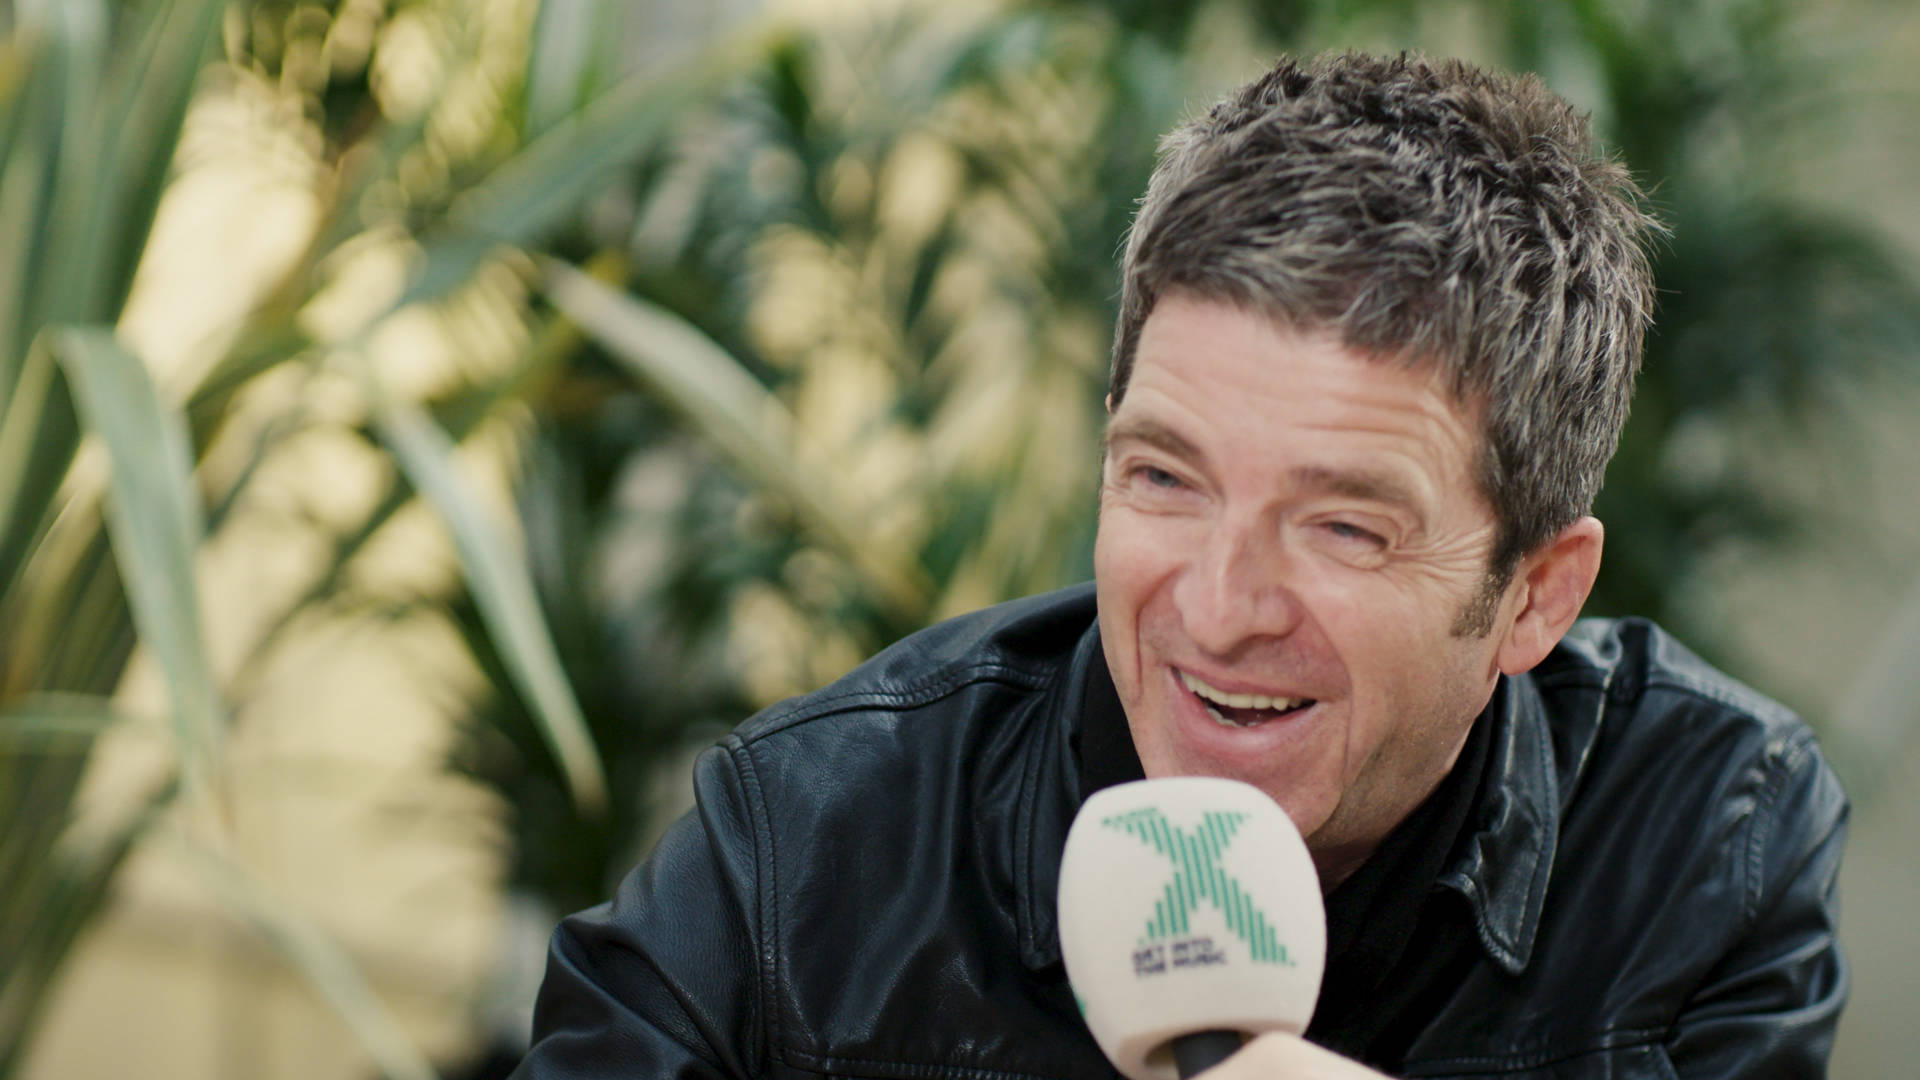 WATCH: What was Noel Gallagher's most expensive mistake?